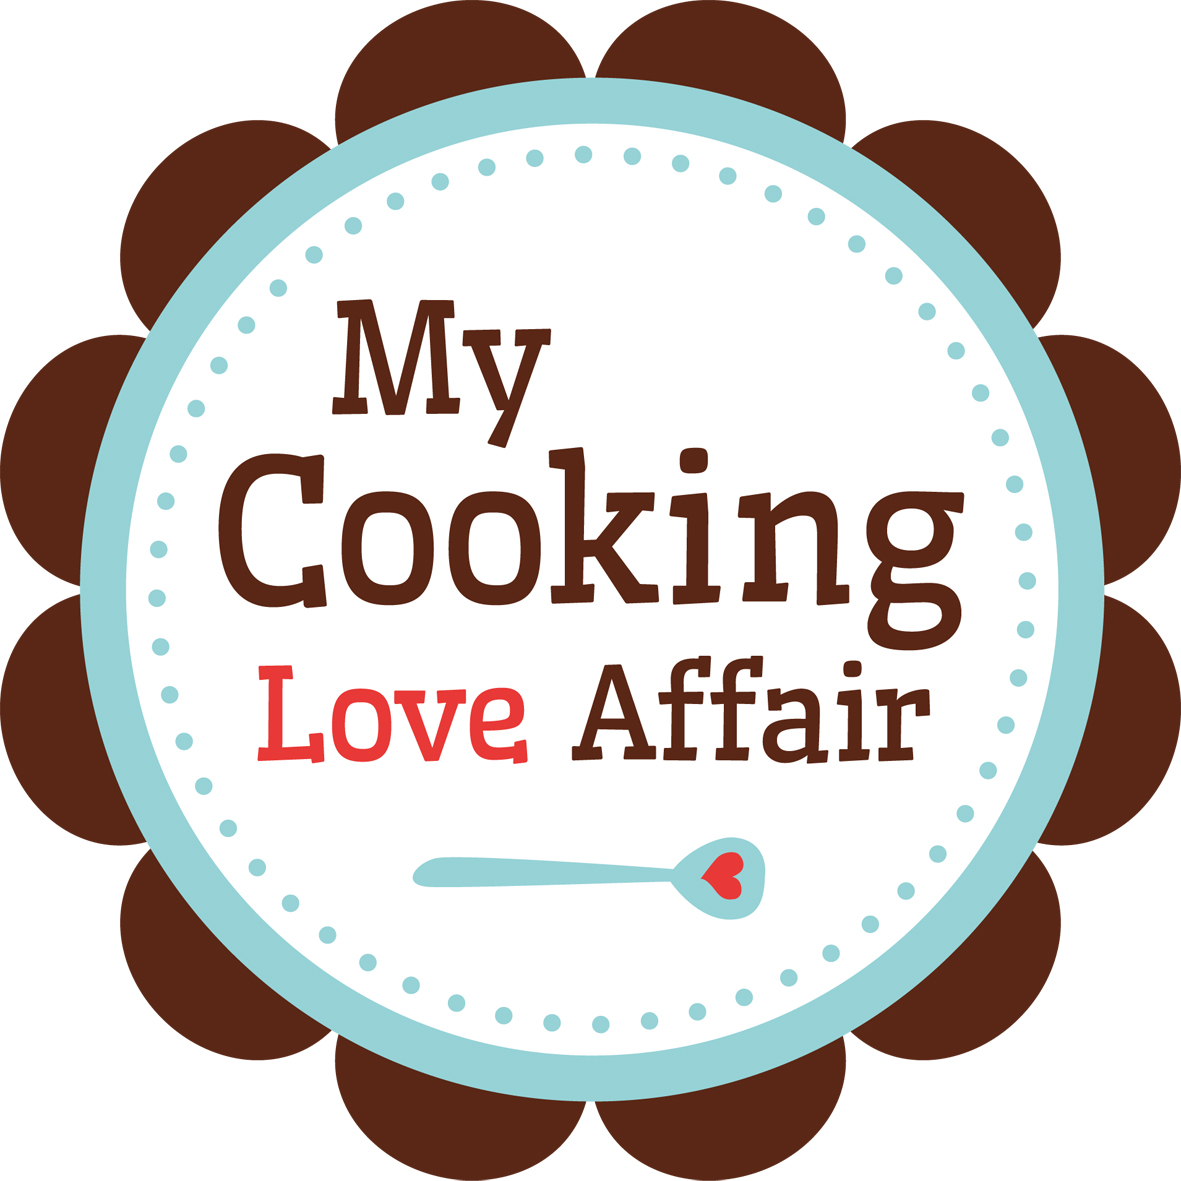 Quelle: My Cooking Love Affair